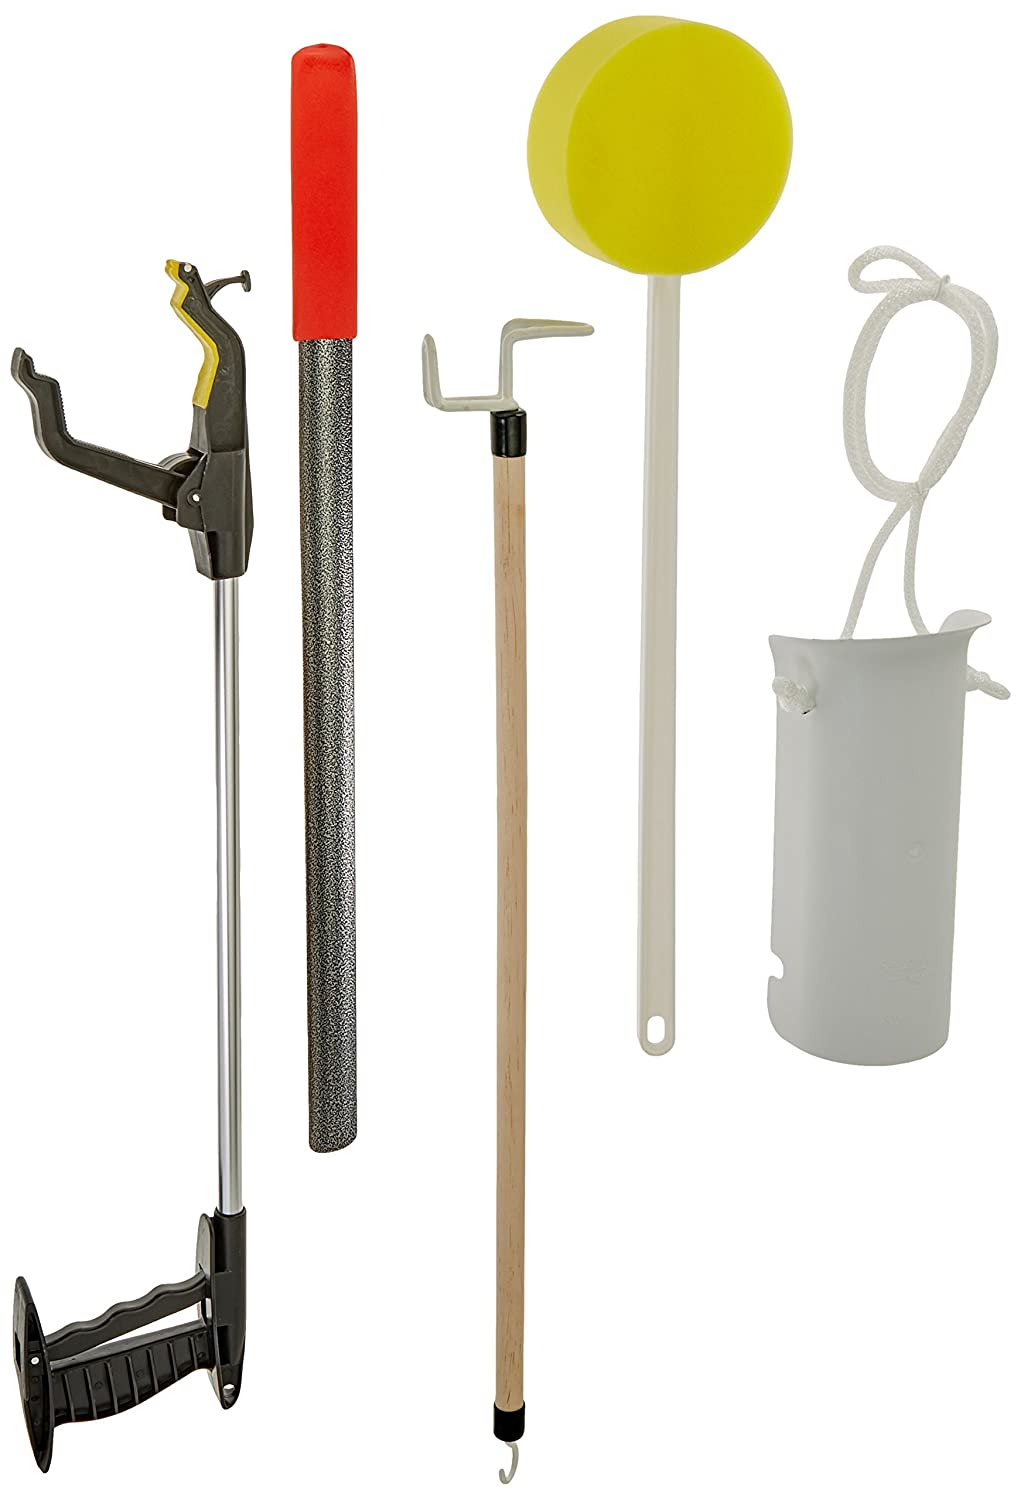 Sammons Preston Hip Kit III, Total Hip Replacement Recovery Kit to Avoid Bending and Moving Hips, ADL Tools for Elderly, Including Reacher Grabber, Sock Notch, Sponge, Dressing Stick, and Shoehorn: Industrial & Scientific